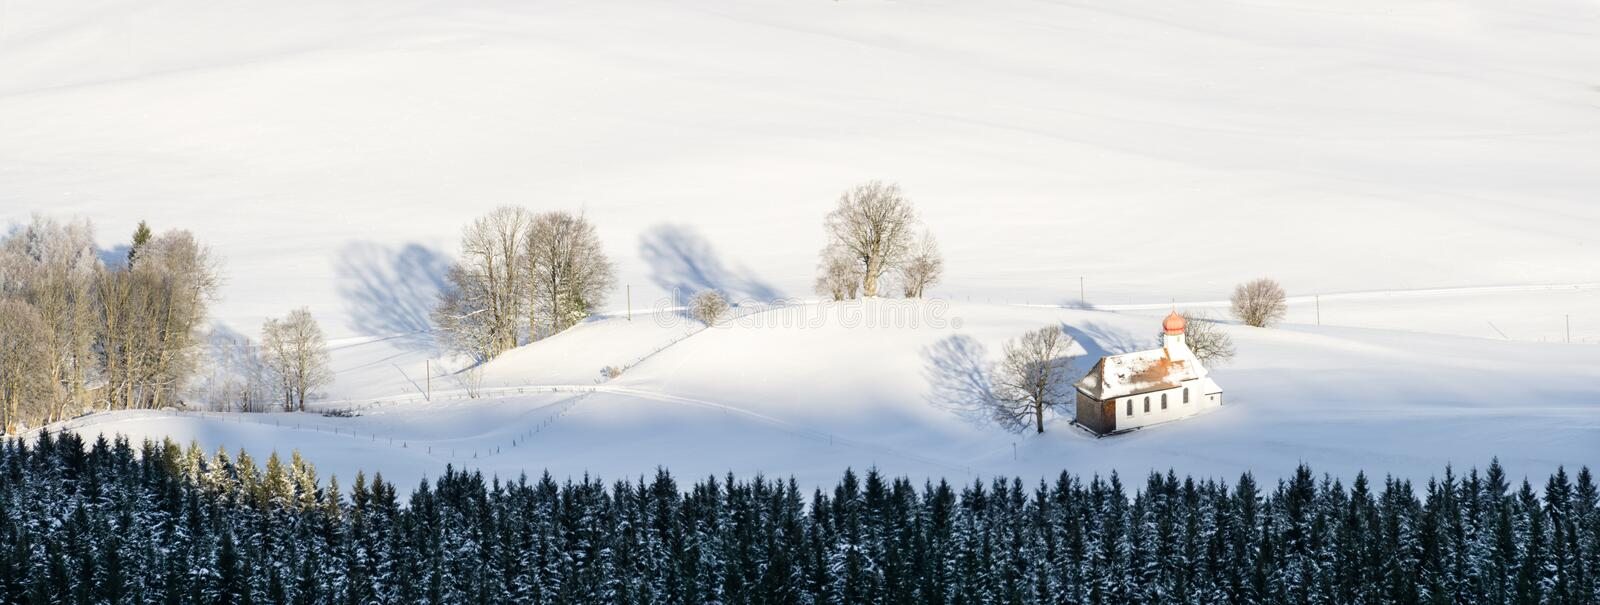 Beautiful chapel in lovely rural countryside on snowy winter sunrise seen from above. Weitnau, Allgau, Bavaria, Germany. royalty free stock images